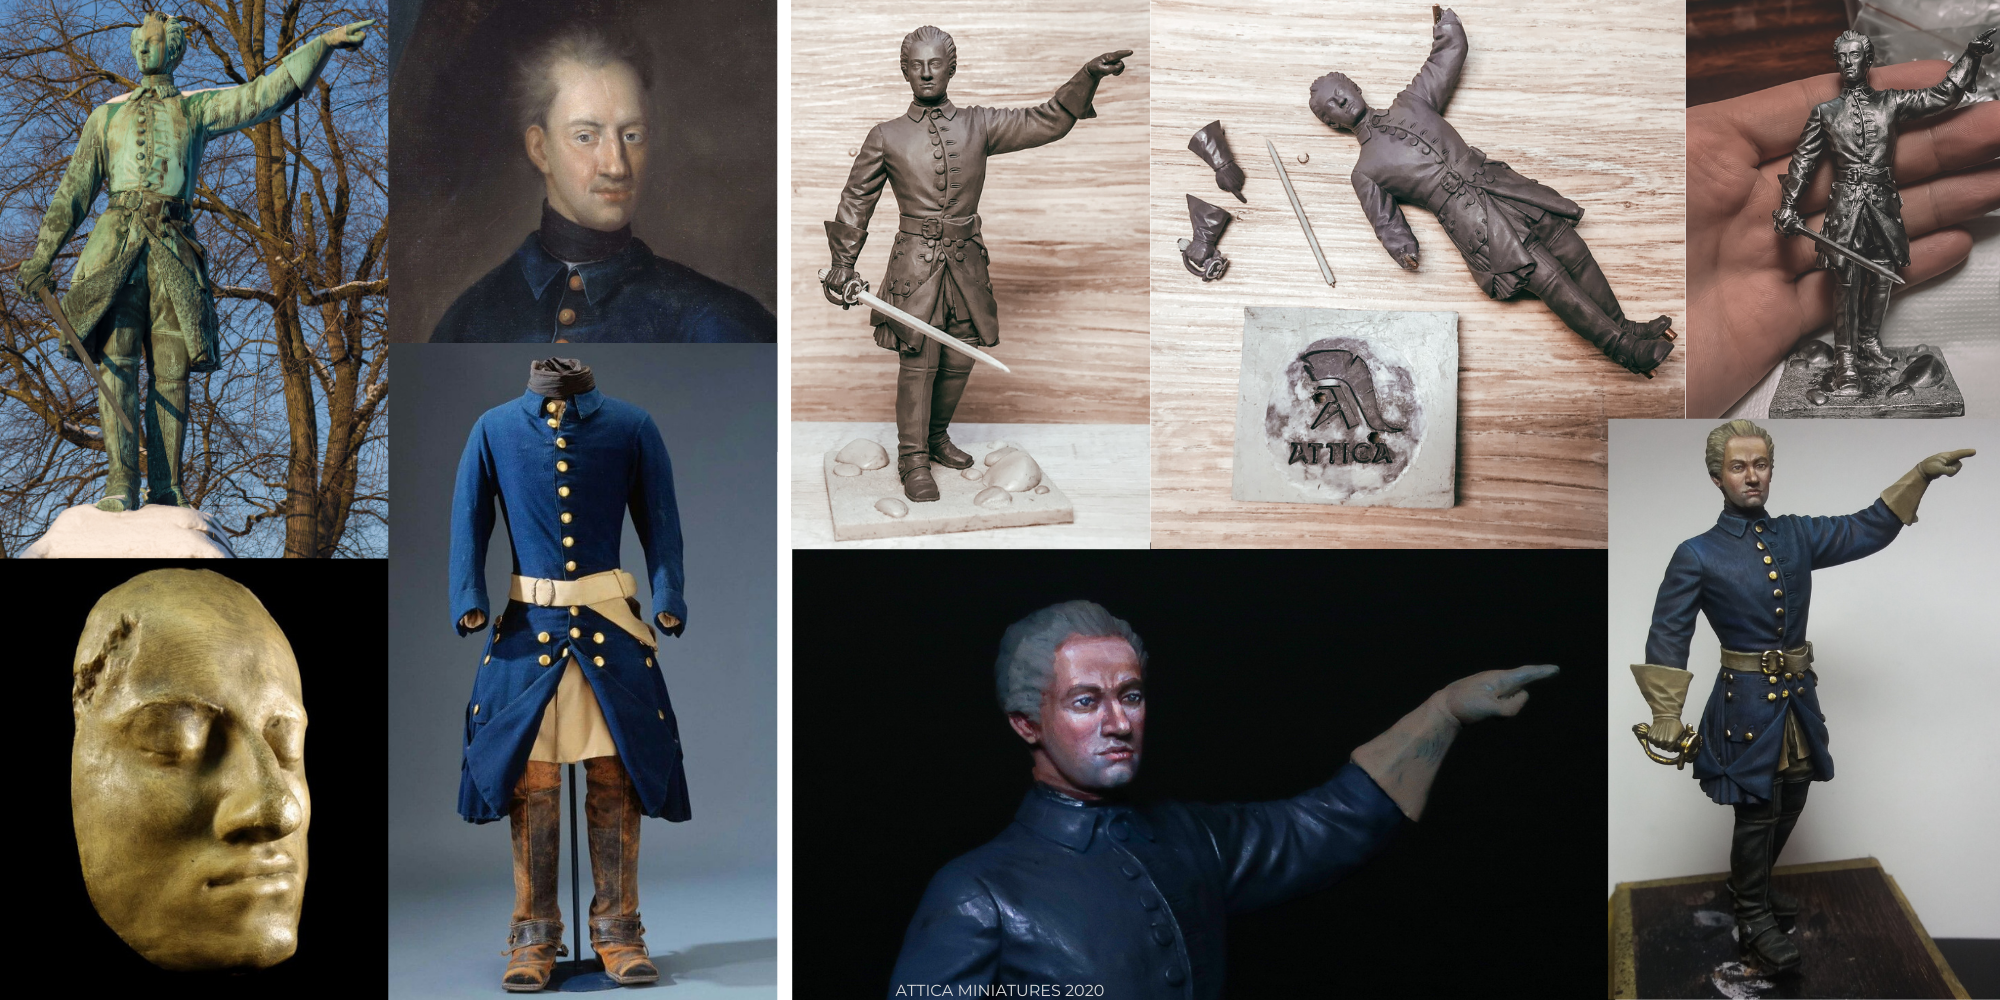 images/charles-xii/charles-12-attica-miniatures-work-in-progress.png